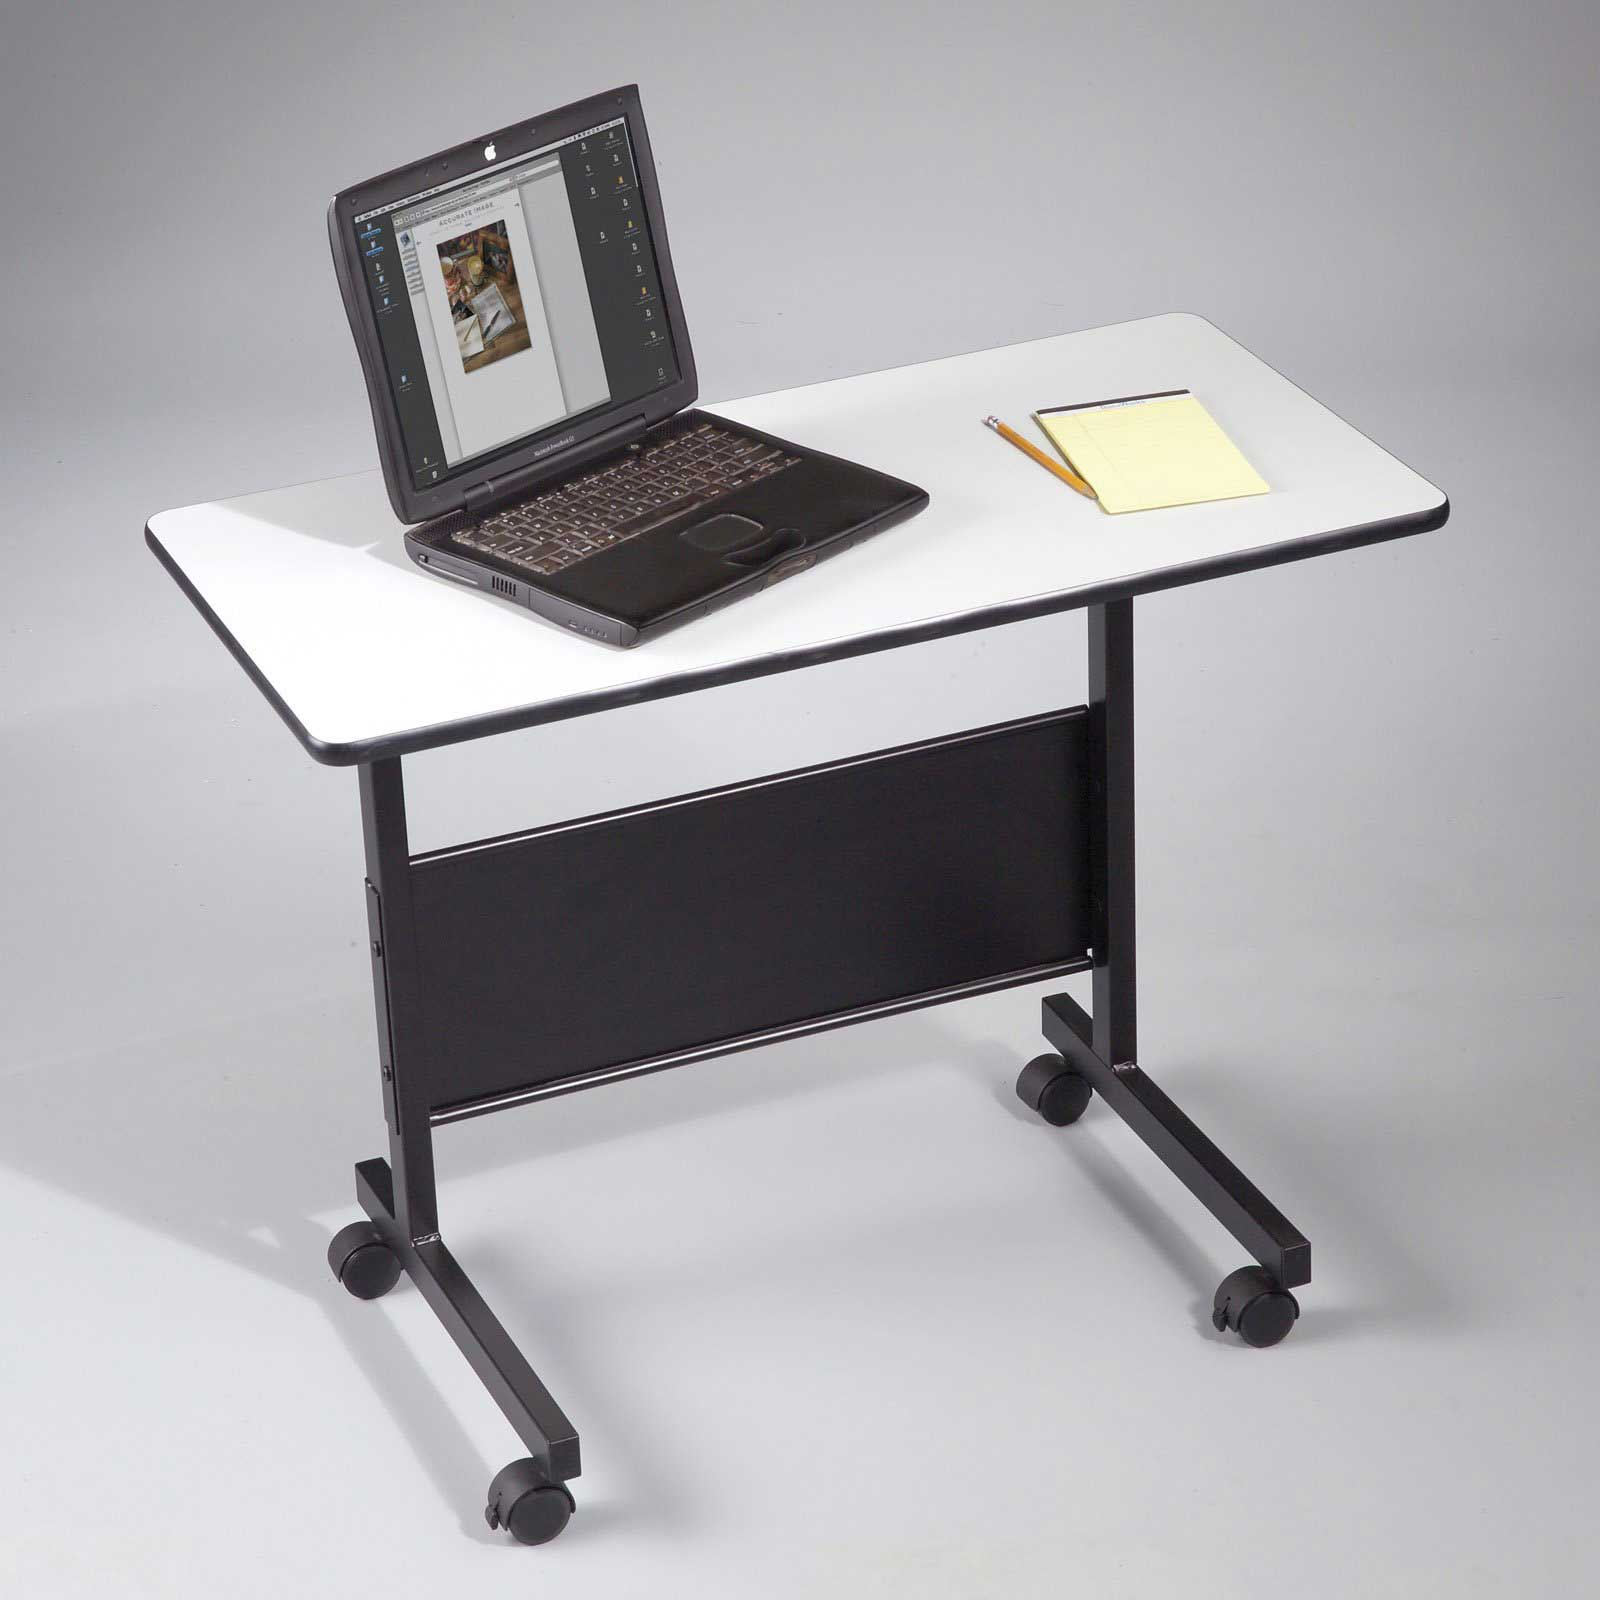 height adjustable table for laptop computer